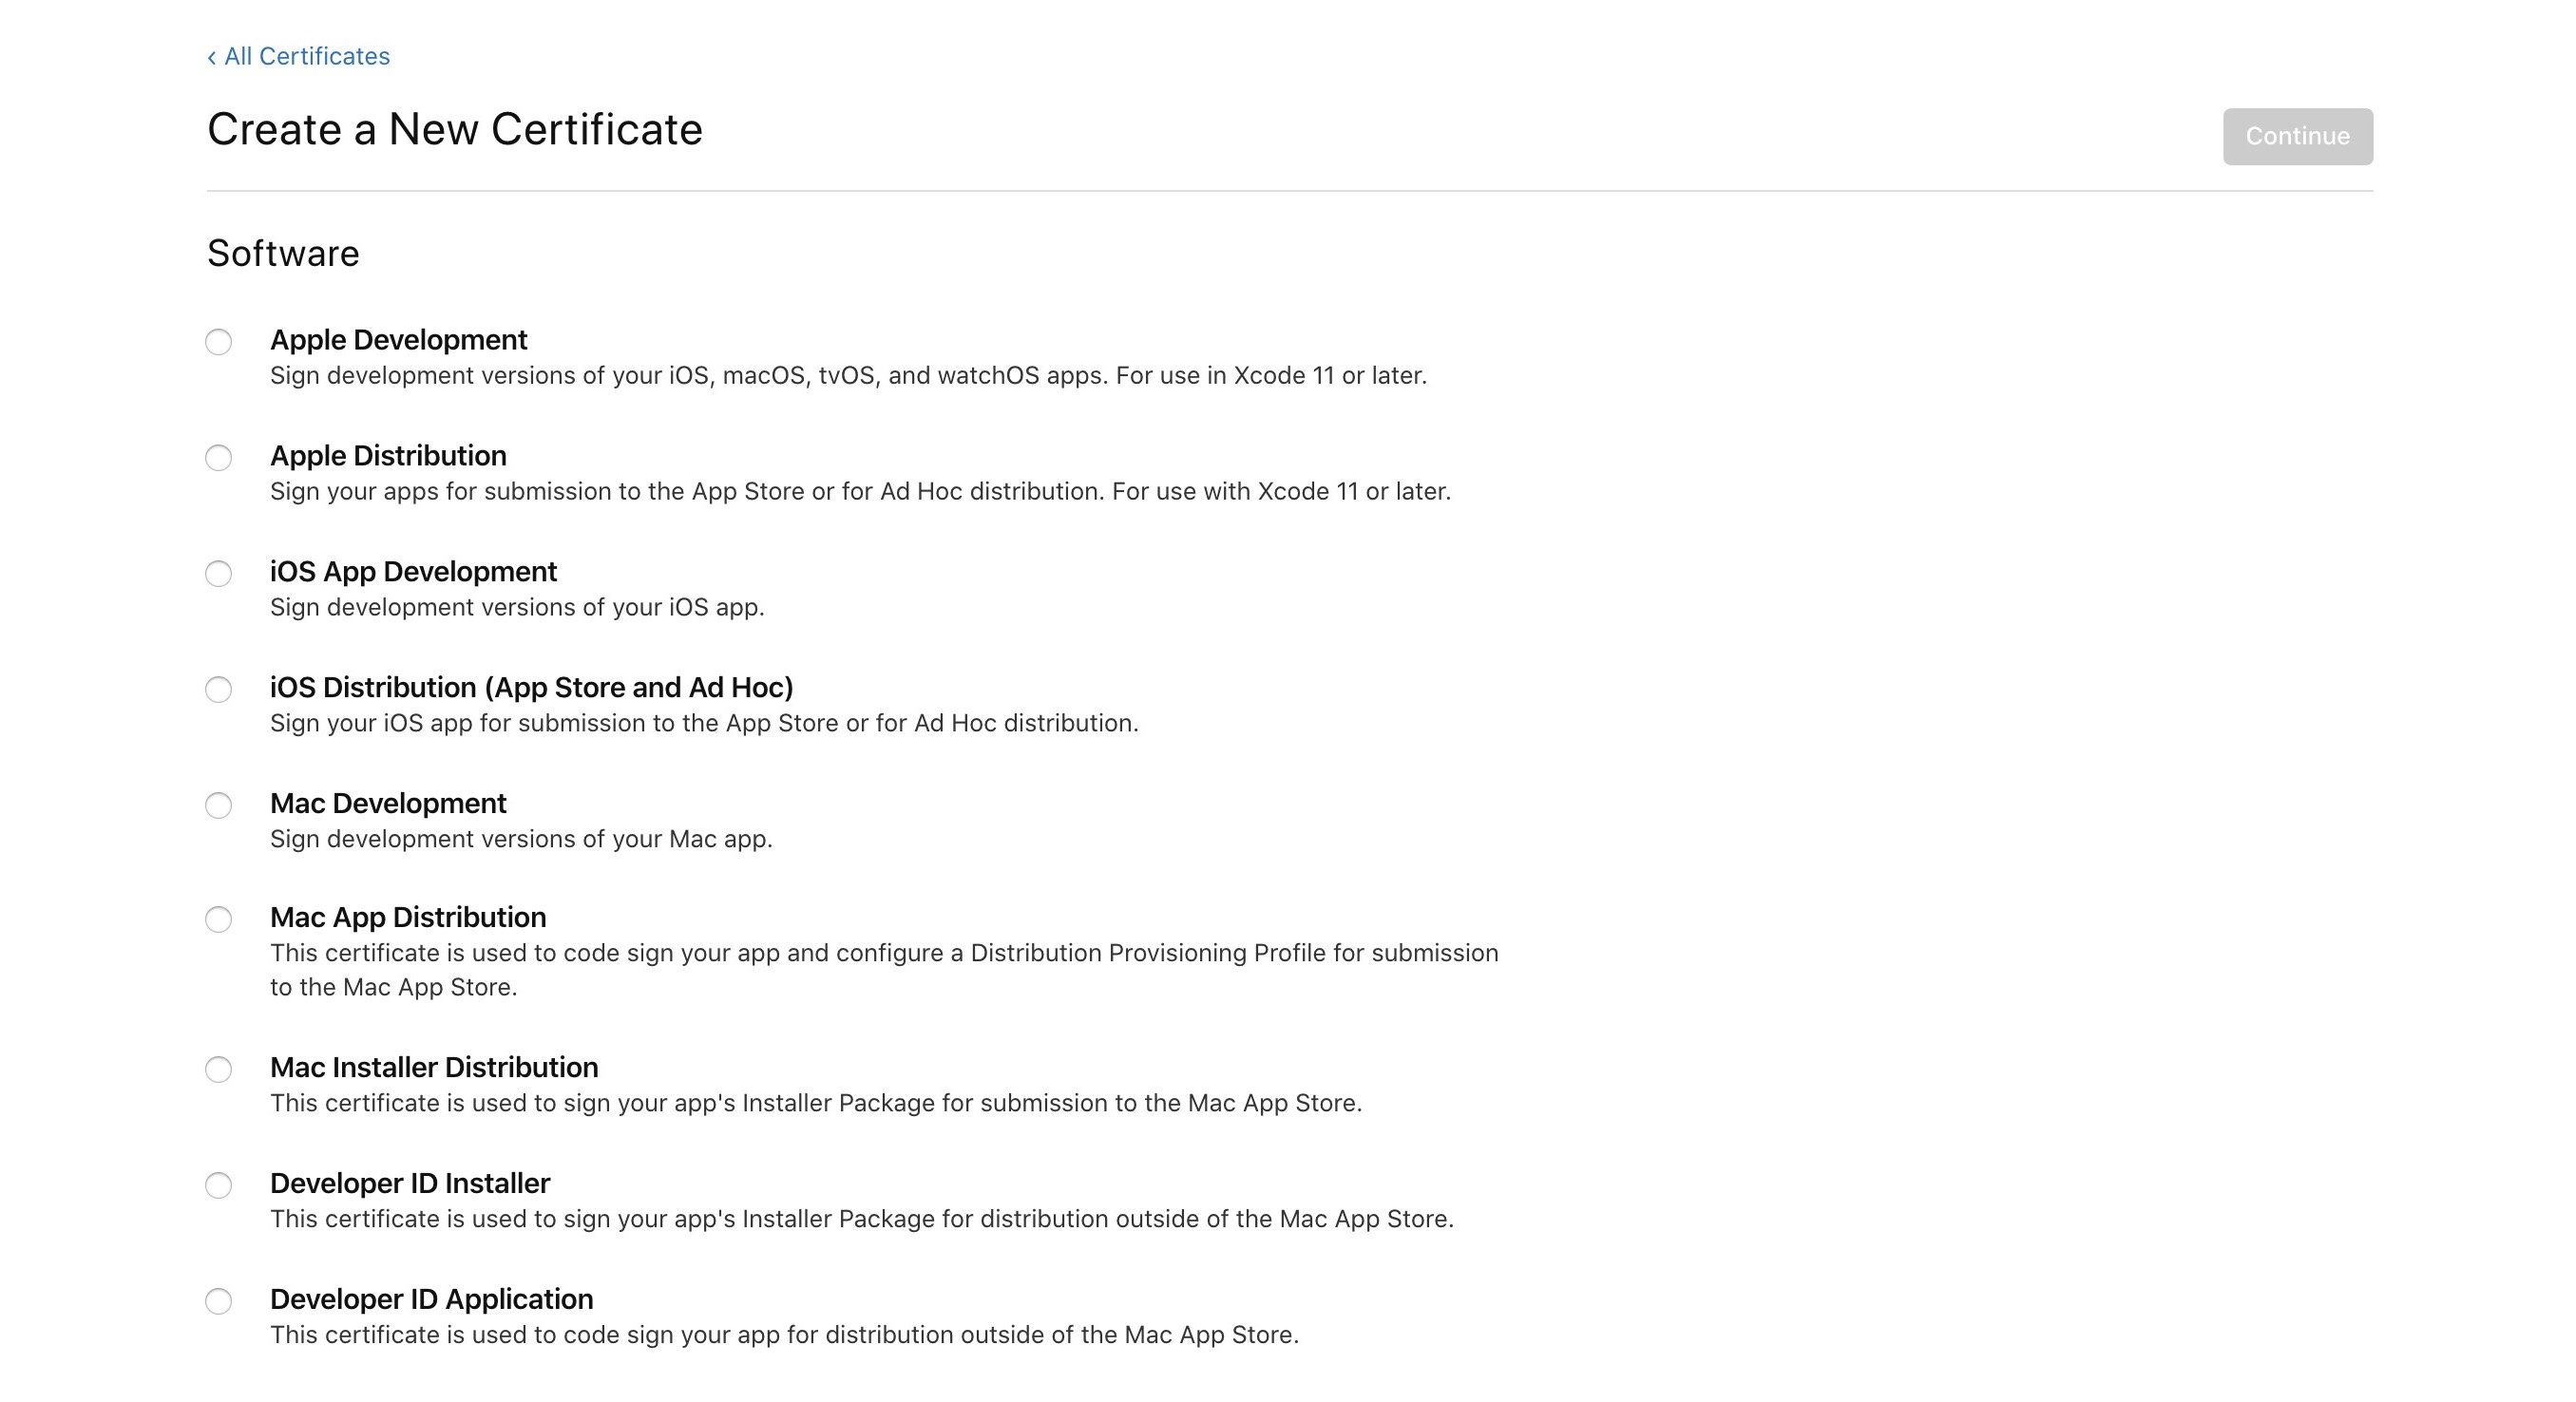 List of possible certificate types from Apple.